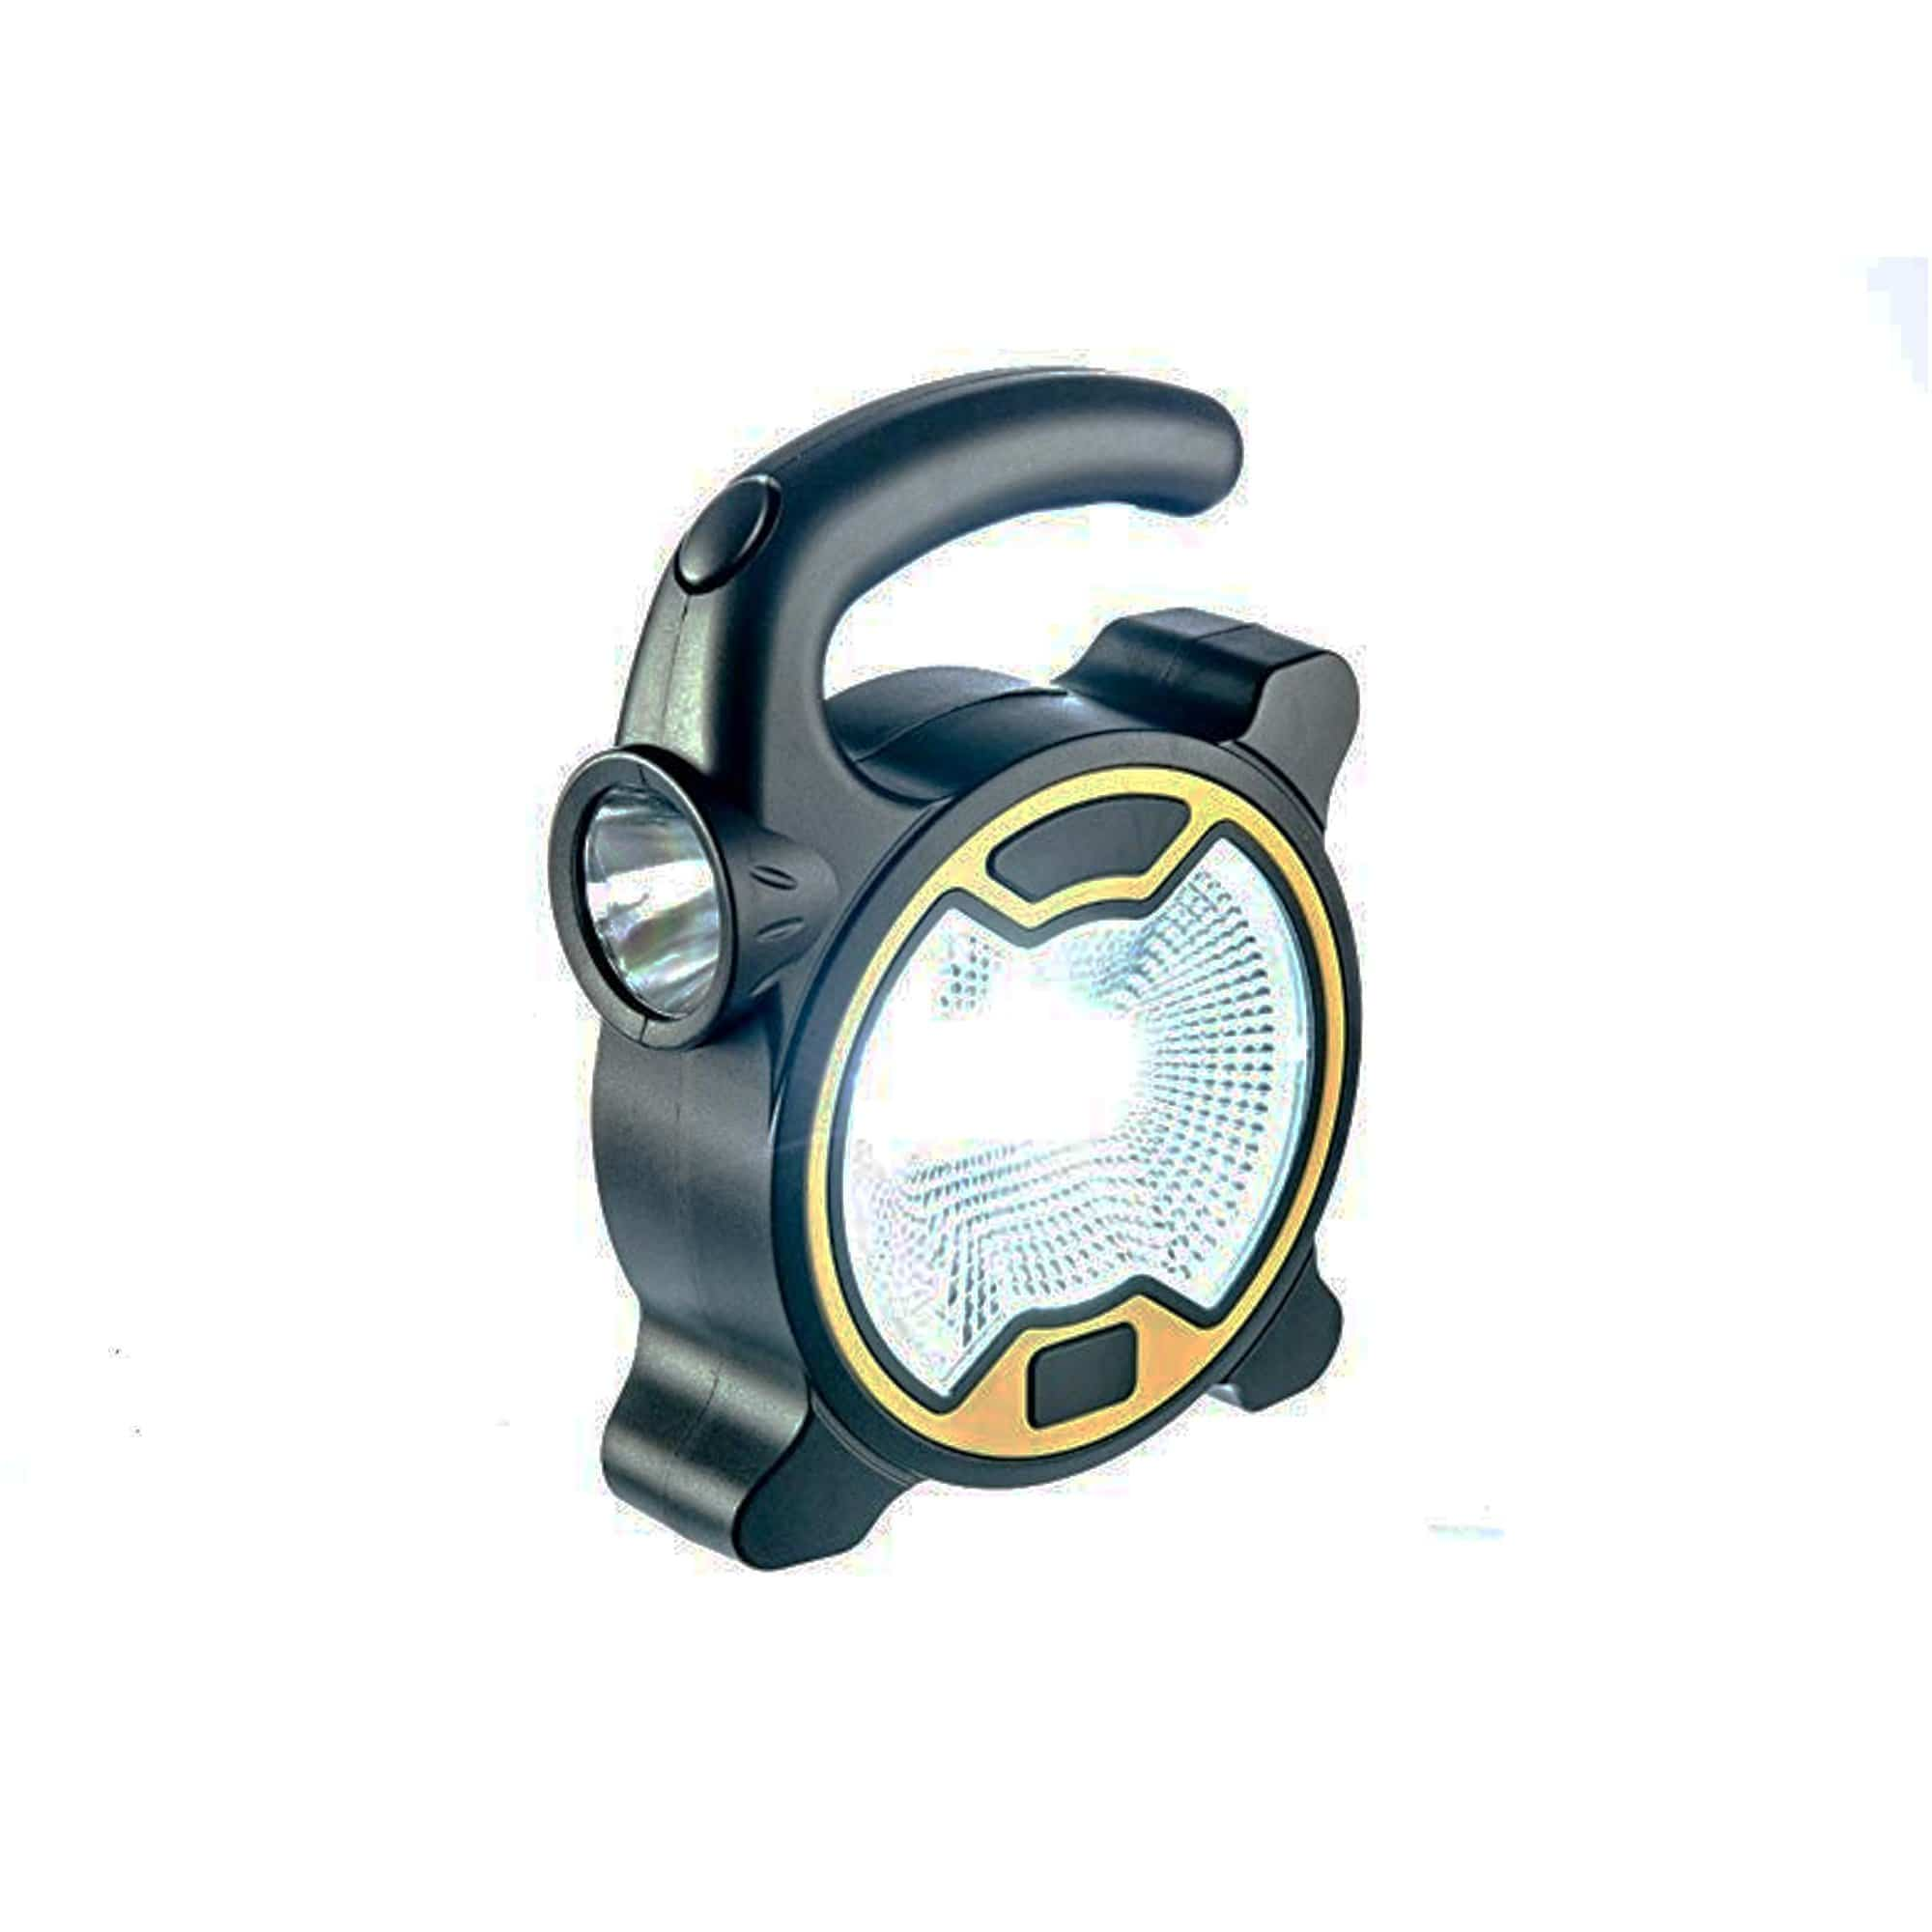 COB LED 2-1 Portable Work Light